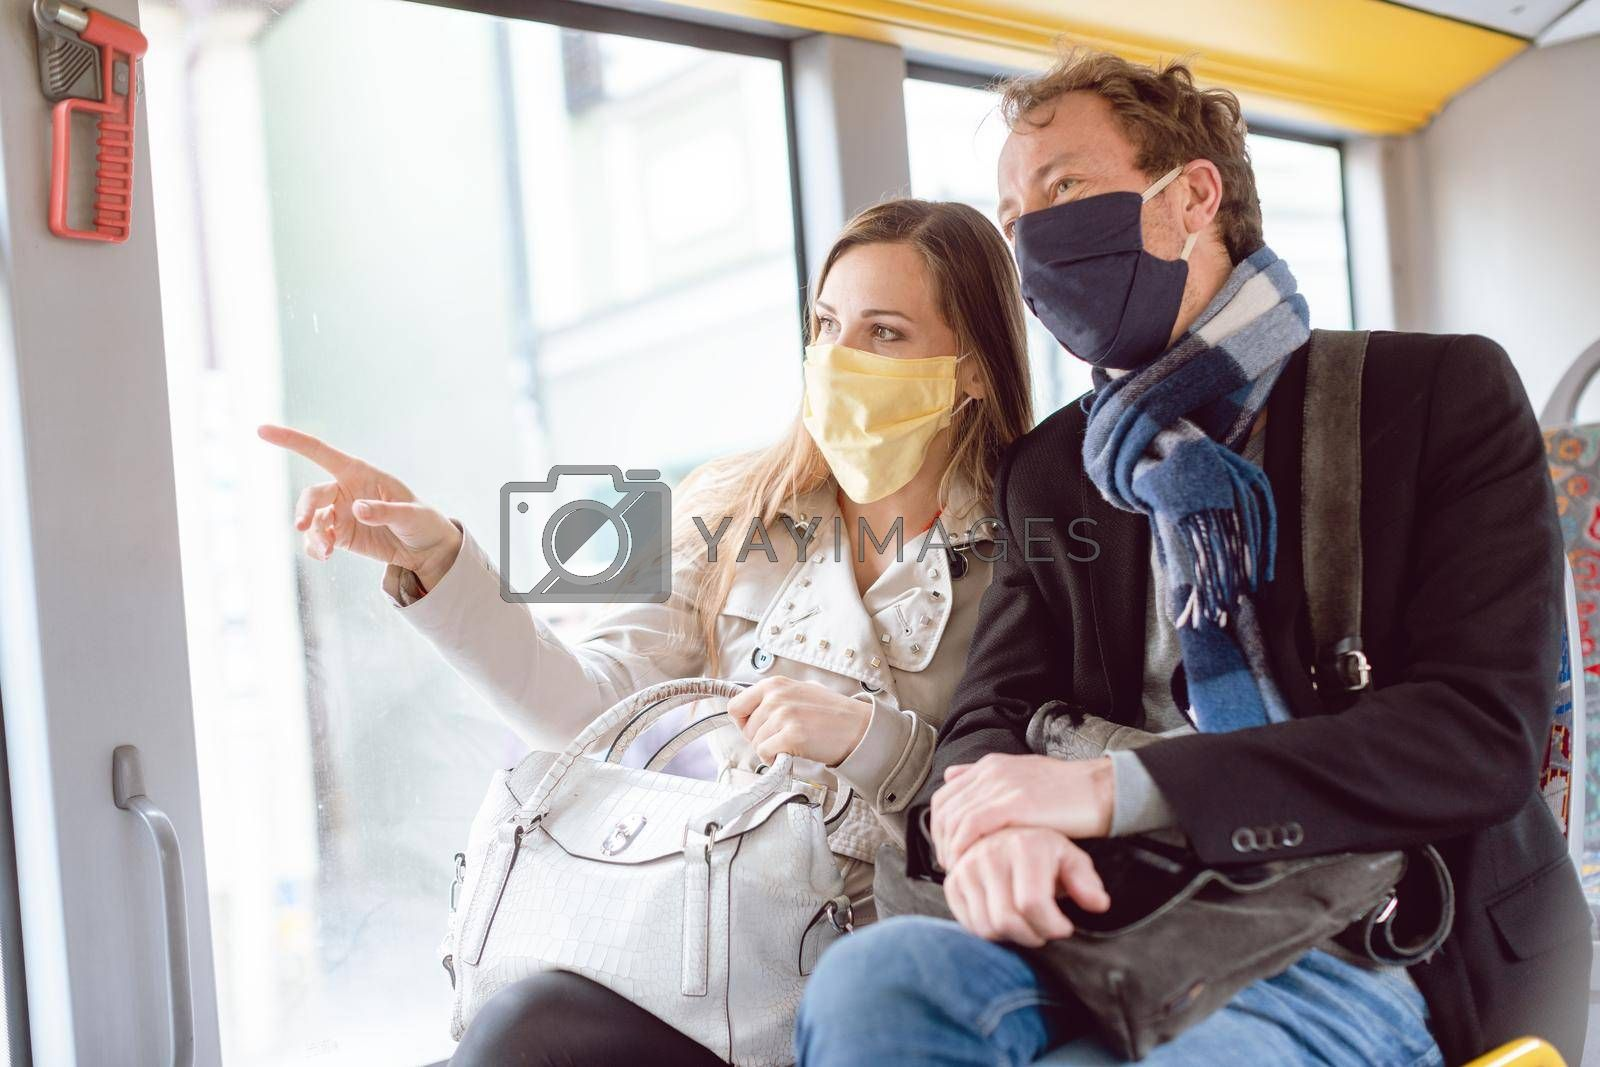 Couple in public transport bus wearing masks due to virus pandemic